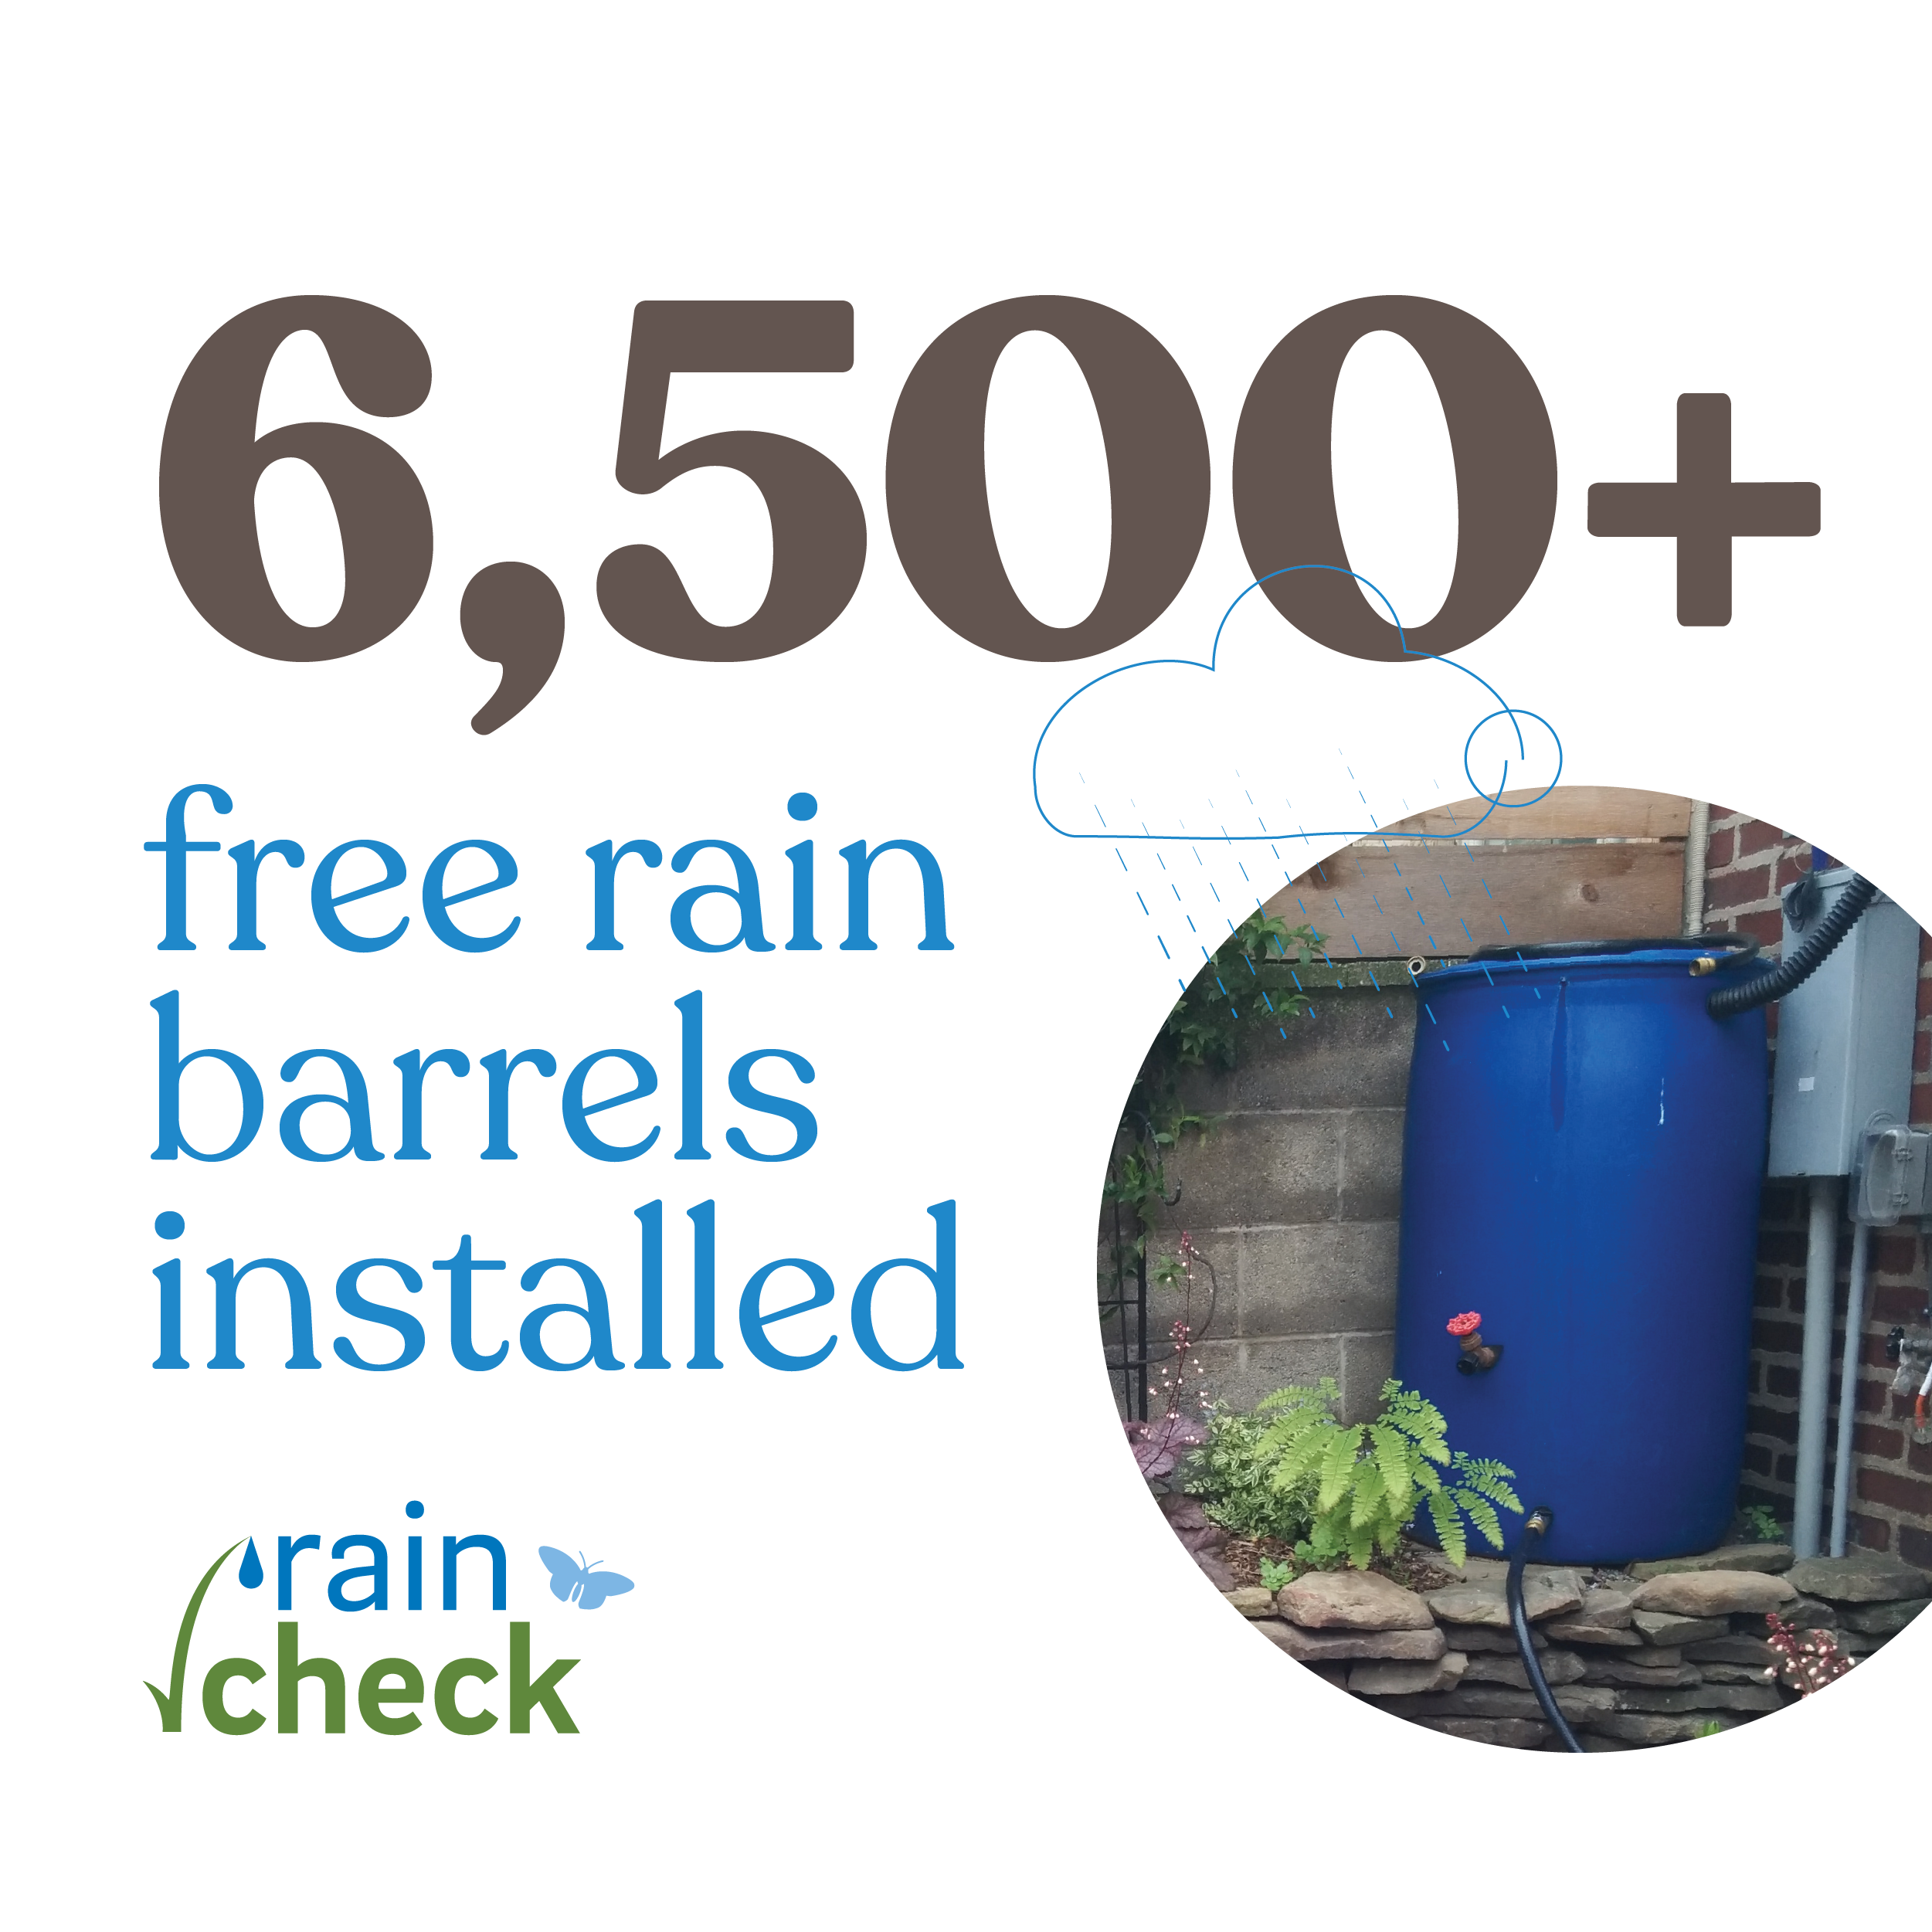 Over 6500 free rain barrels have been installed as part of the Rain Check program to date.